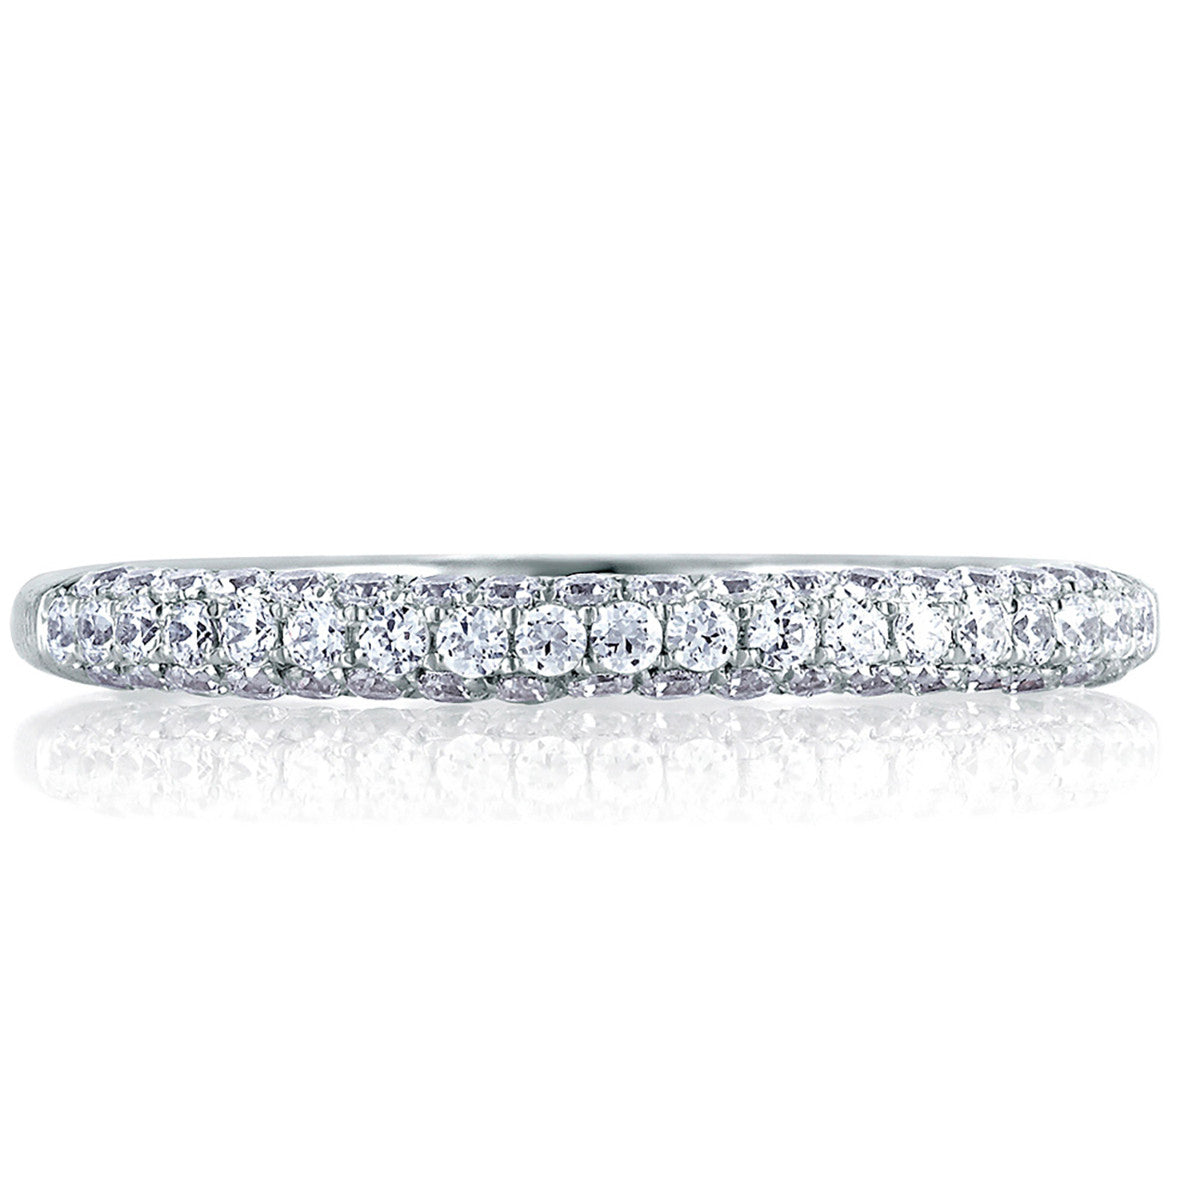 A. Jaffe All Sides French Pave Signature Band MRS307/48